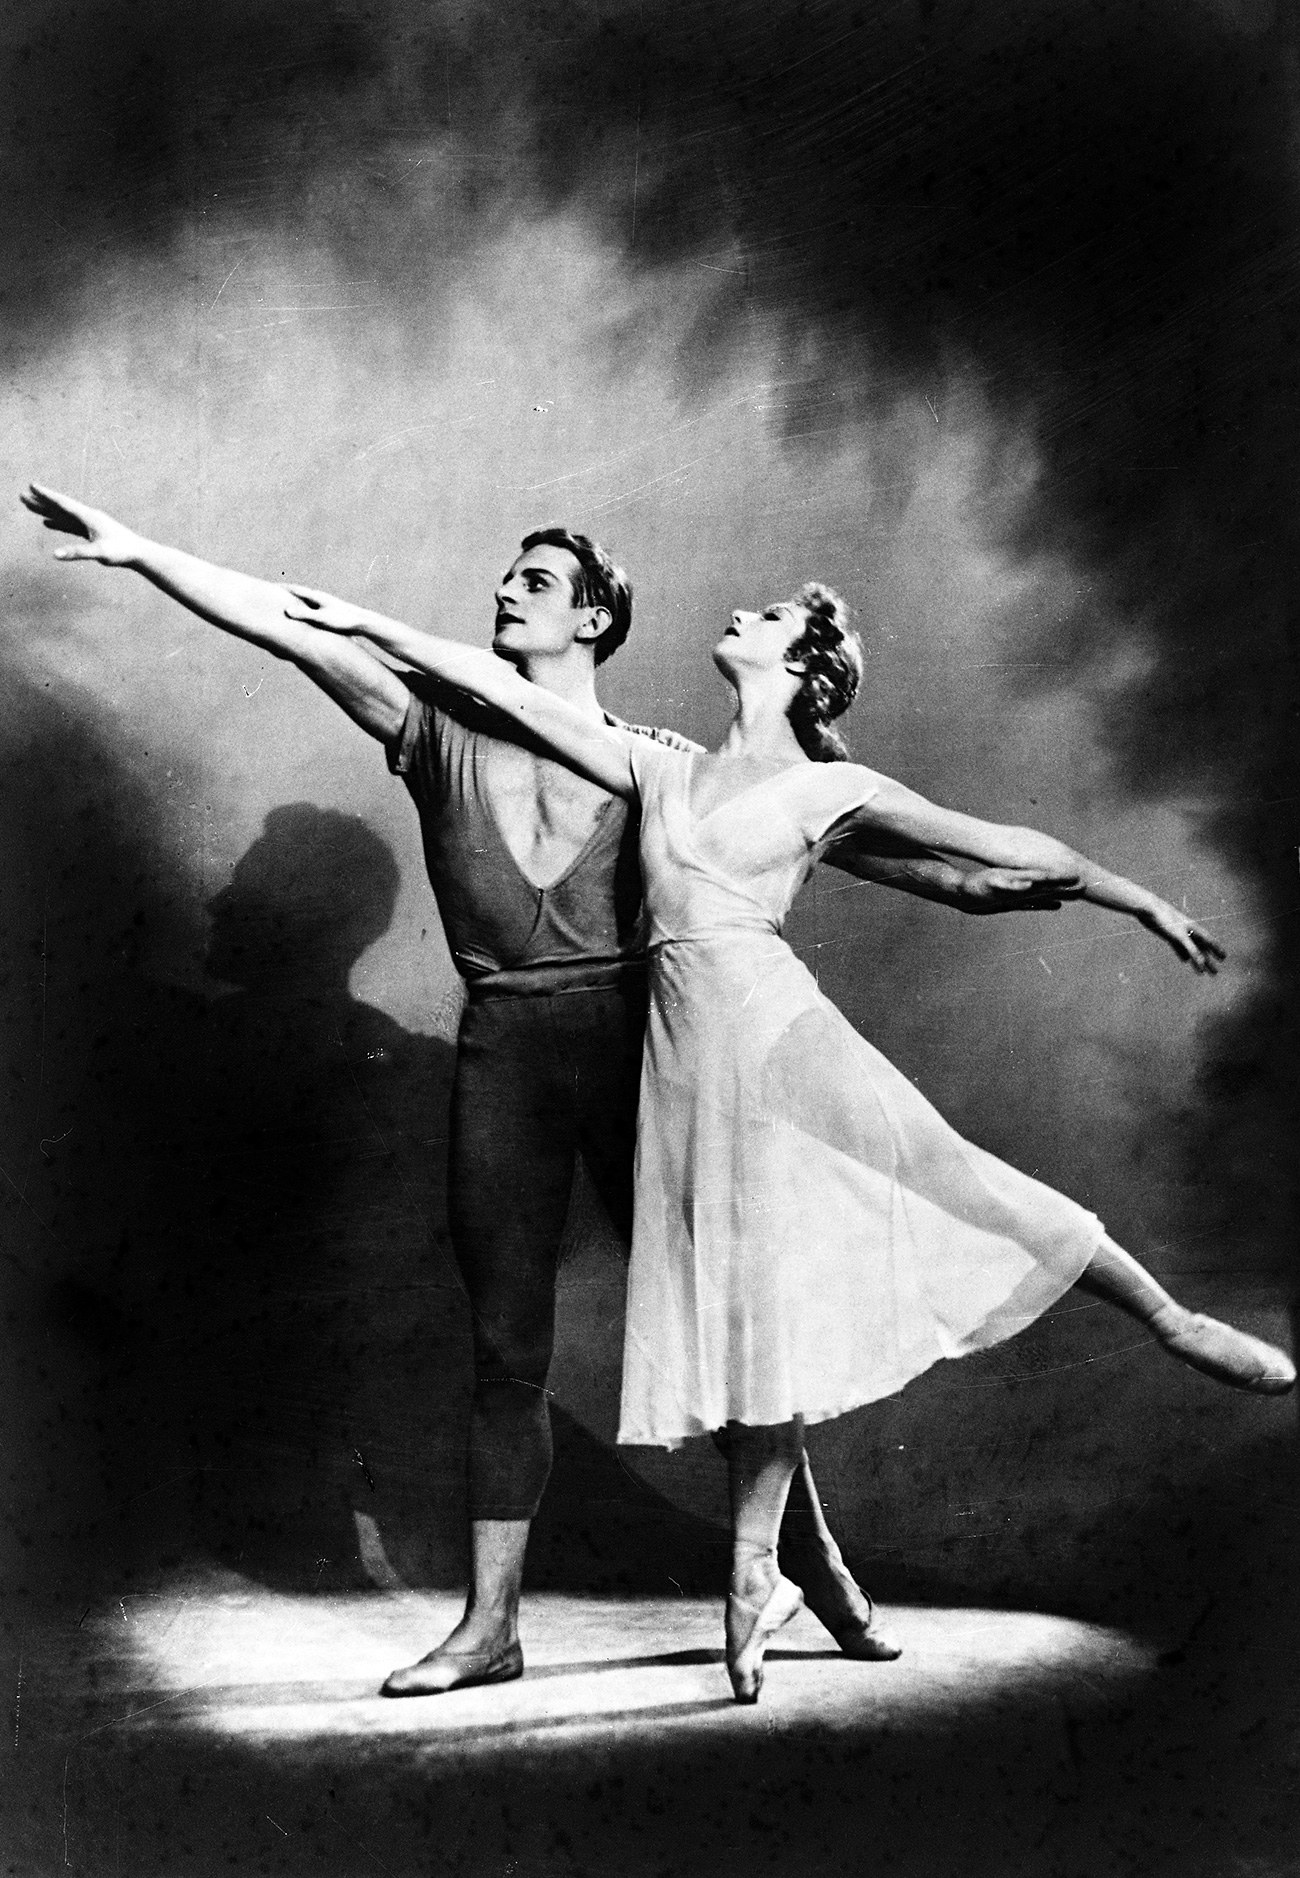 Alla Osipenko and Askold Makarov in the Coast of Hope ballet. The Leningrad State Academic Theater of Opera and Ballet. / RIA Novosti